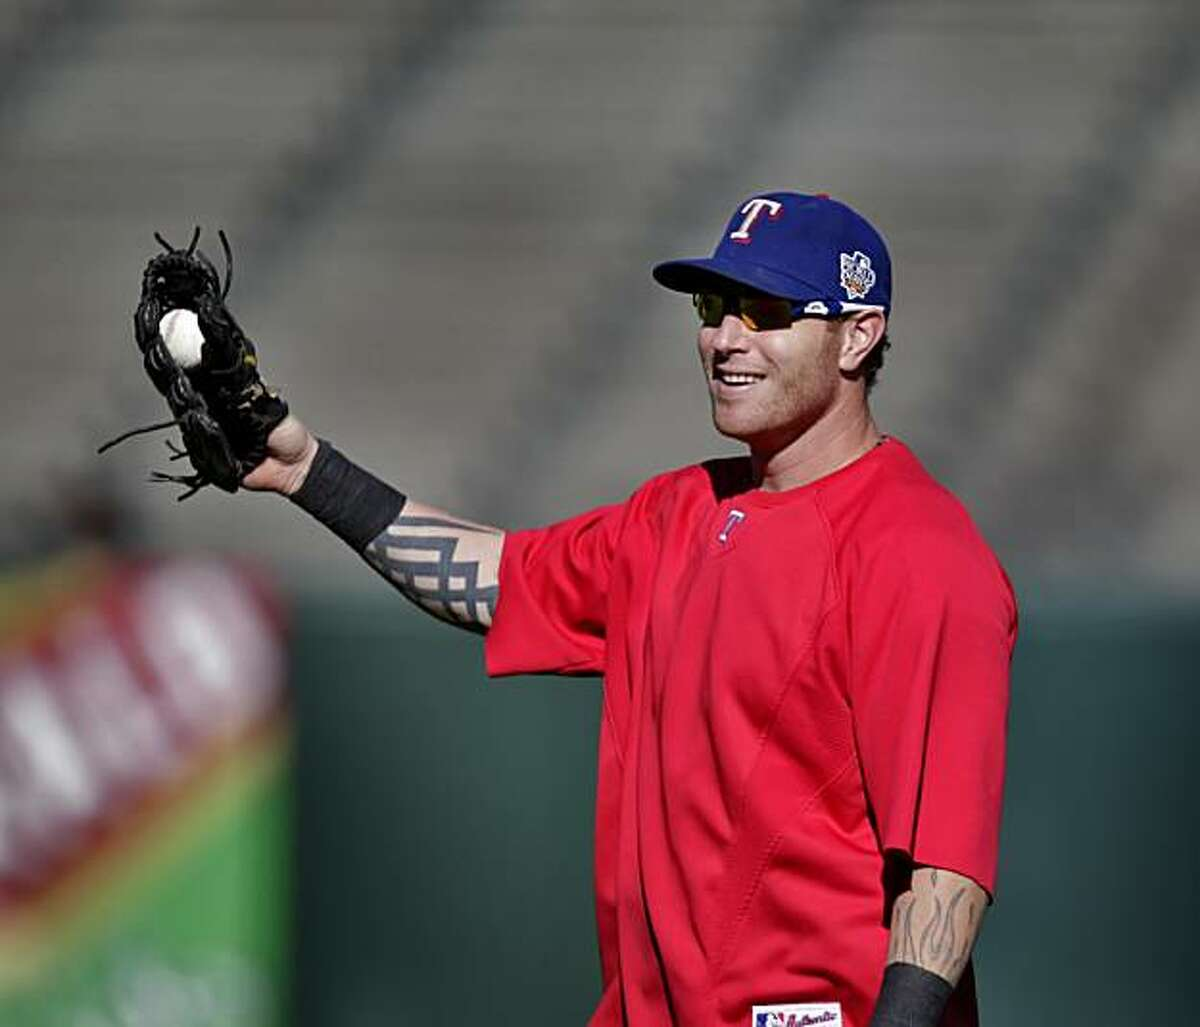 The Texas Rangers outfielder Josh Hamilton warms up during practice, in preparation of the Game 1 of the World Series, Tuesday Oct. 26, 2010, at AT&T Park, in San Francisco, Calif.